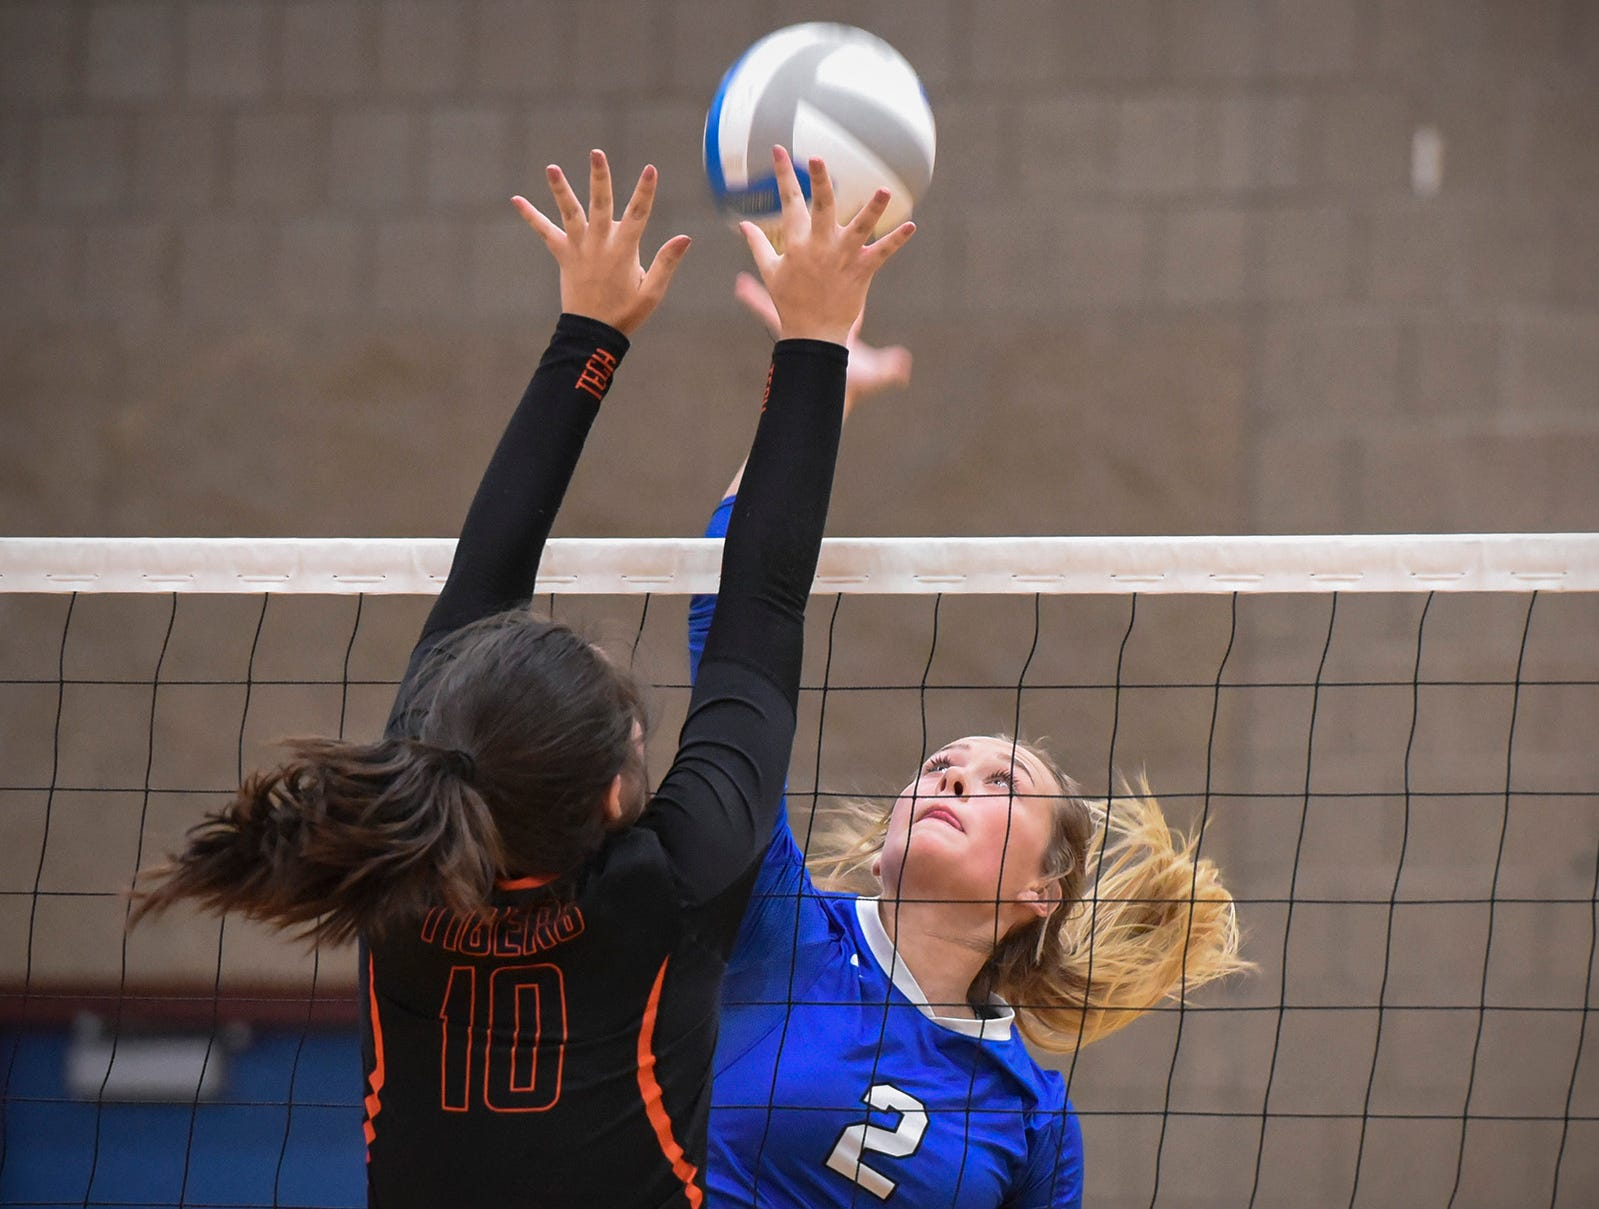 Tech's Ana Rivera goes up to block a spike by Sartell's Alexis Nygaard during the first game Tuesday, Sept. 11, in Sartell